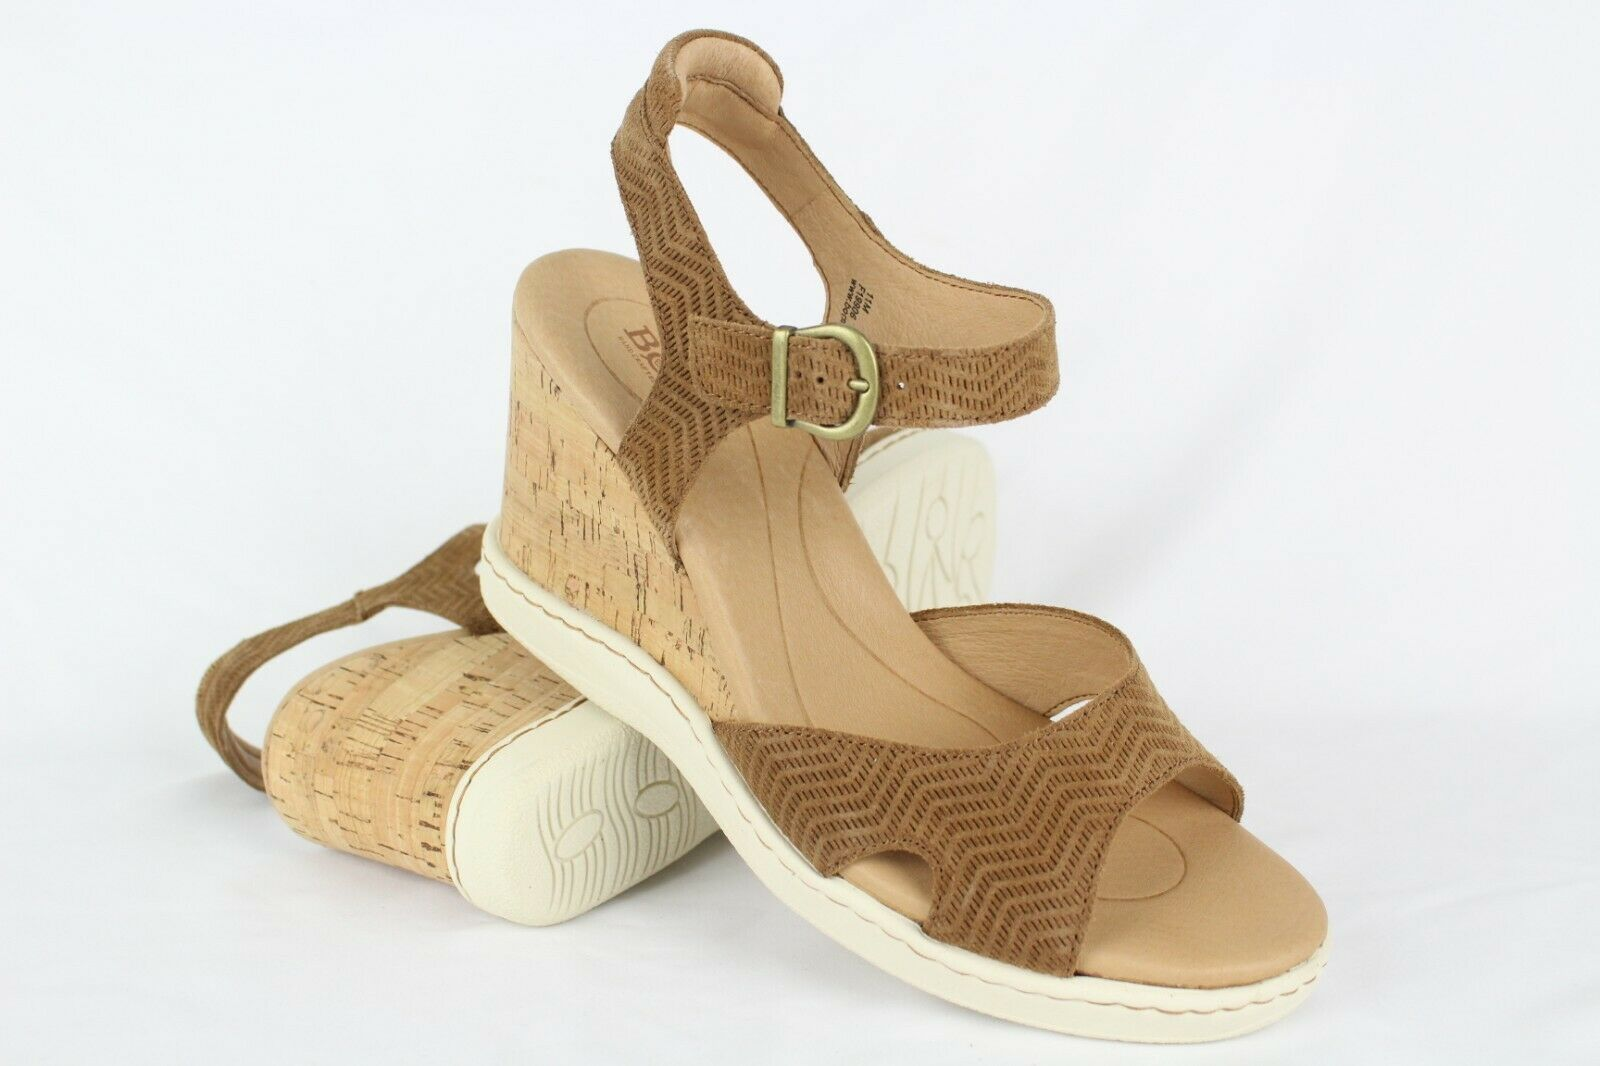 New Born Women's Puno Ankle Strap Wedge Sandals 11m Brown Masala   F19906